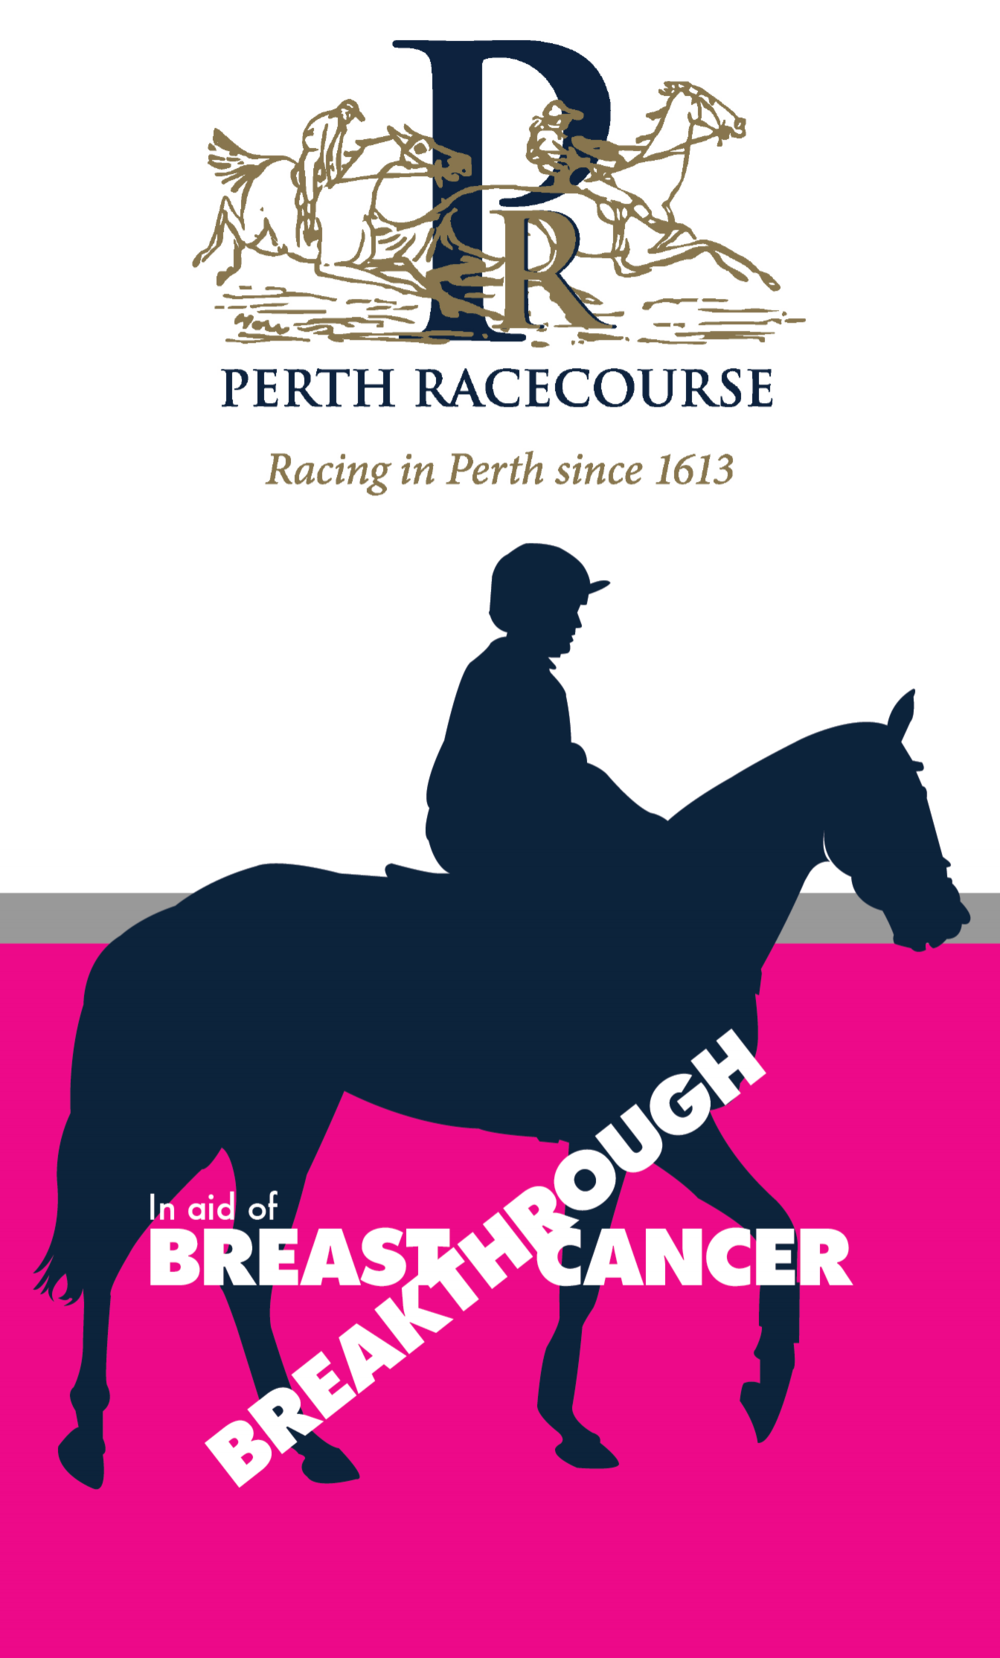 Breakthrough Breast Cancer - Front Page of Perth RacecourseProgramme